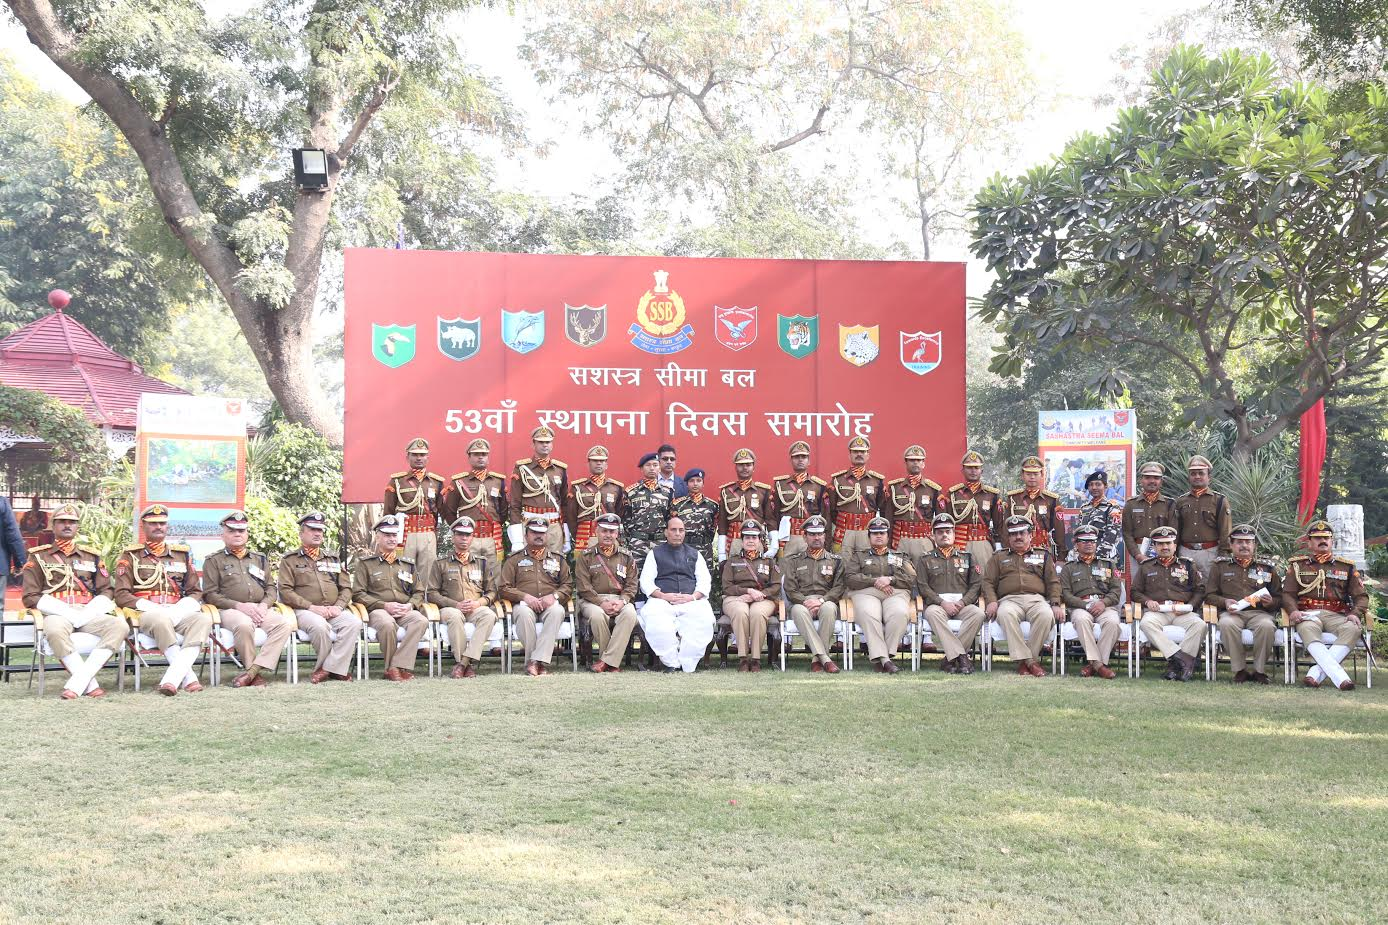 shri-rajnath-singh-at-53rd-ssb-foundation-day-2